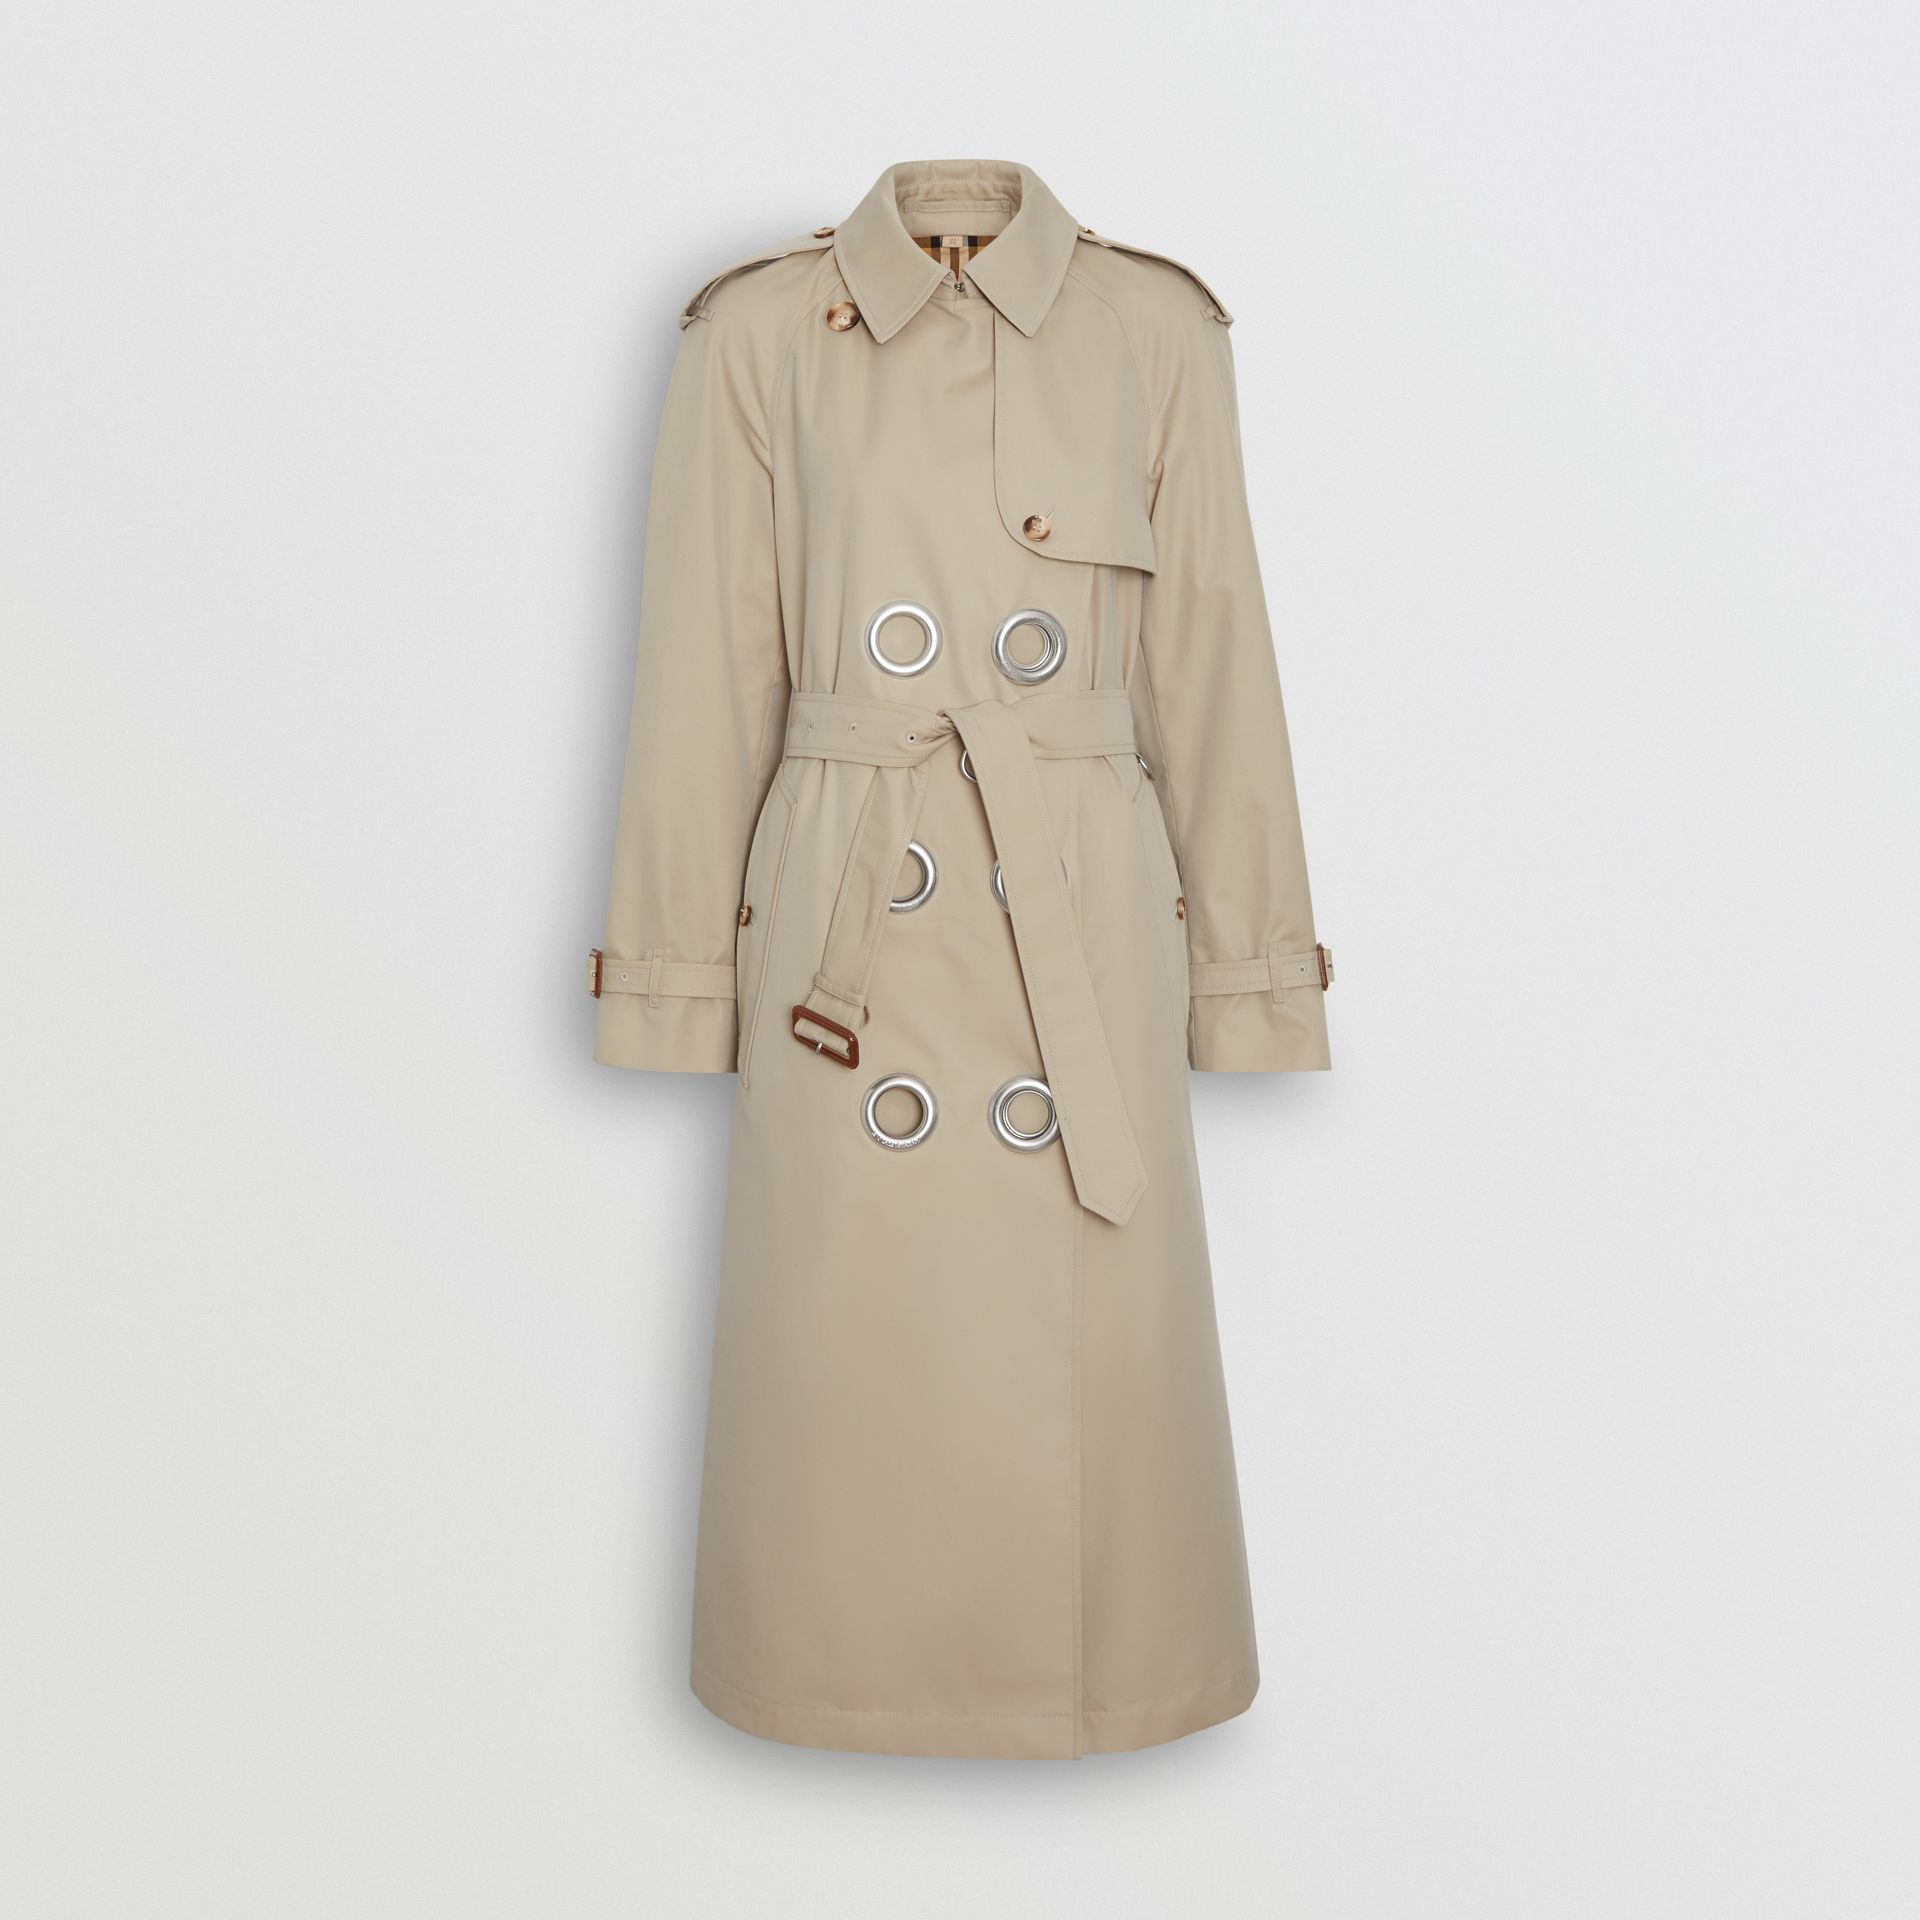 Grommet Detail Cotton Gabardine Trench Coat in Stone - Women | Burberry - gallery image 3